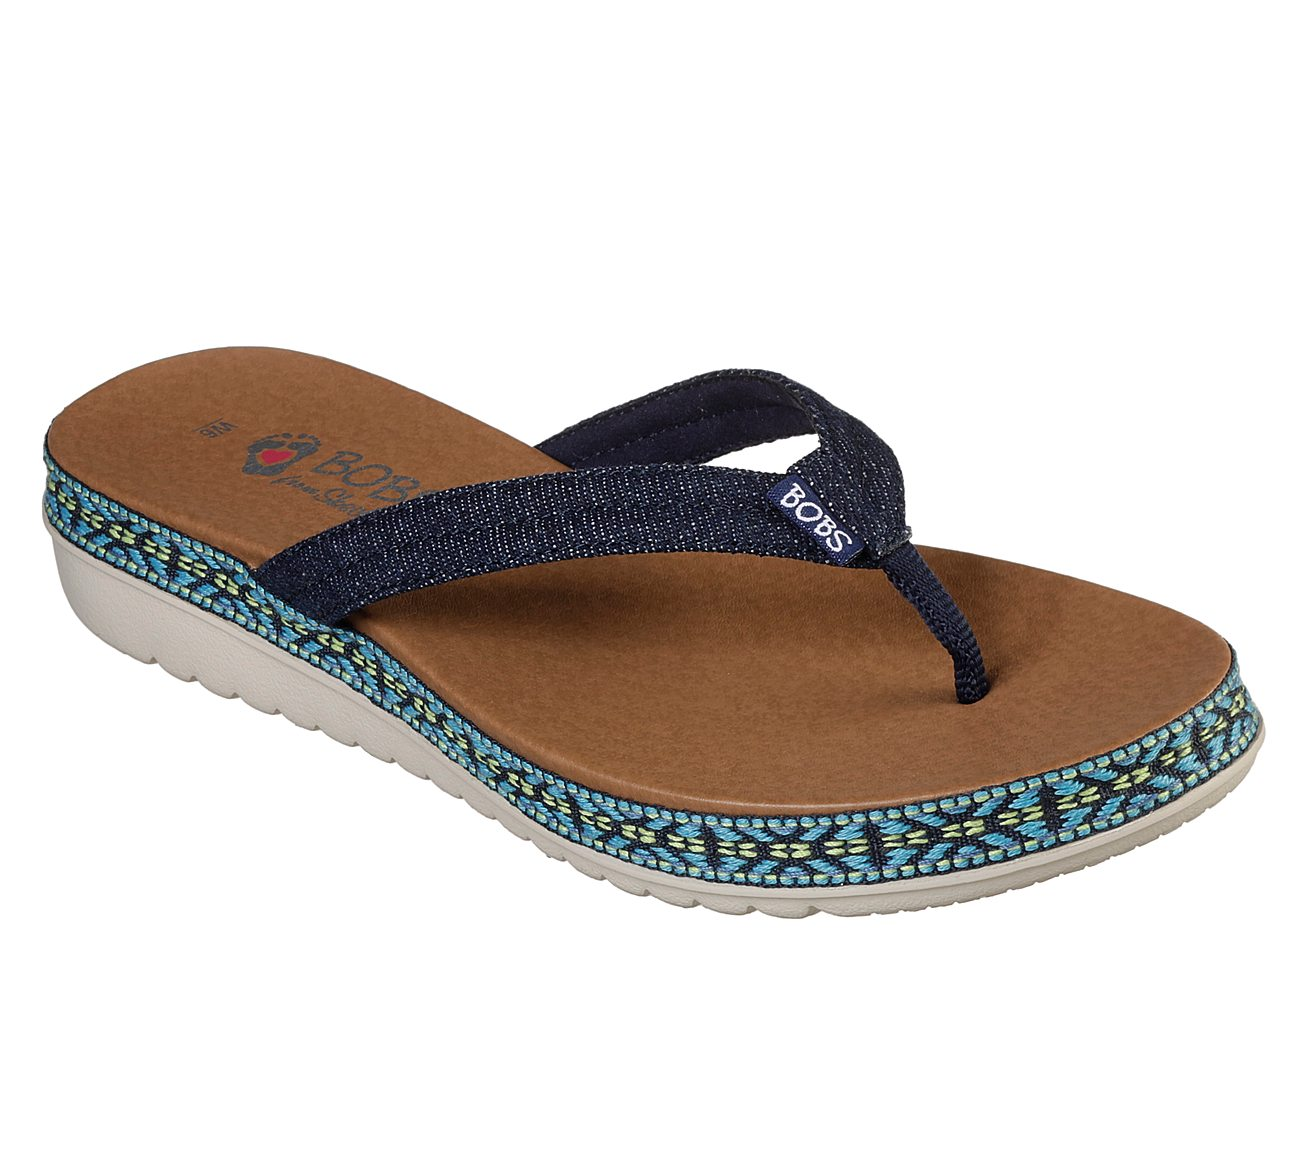 25b5f2ed3076 Buy SKECHERS BOBS Sunkiss - Star Fish BOBS Shoes only  22.00